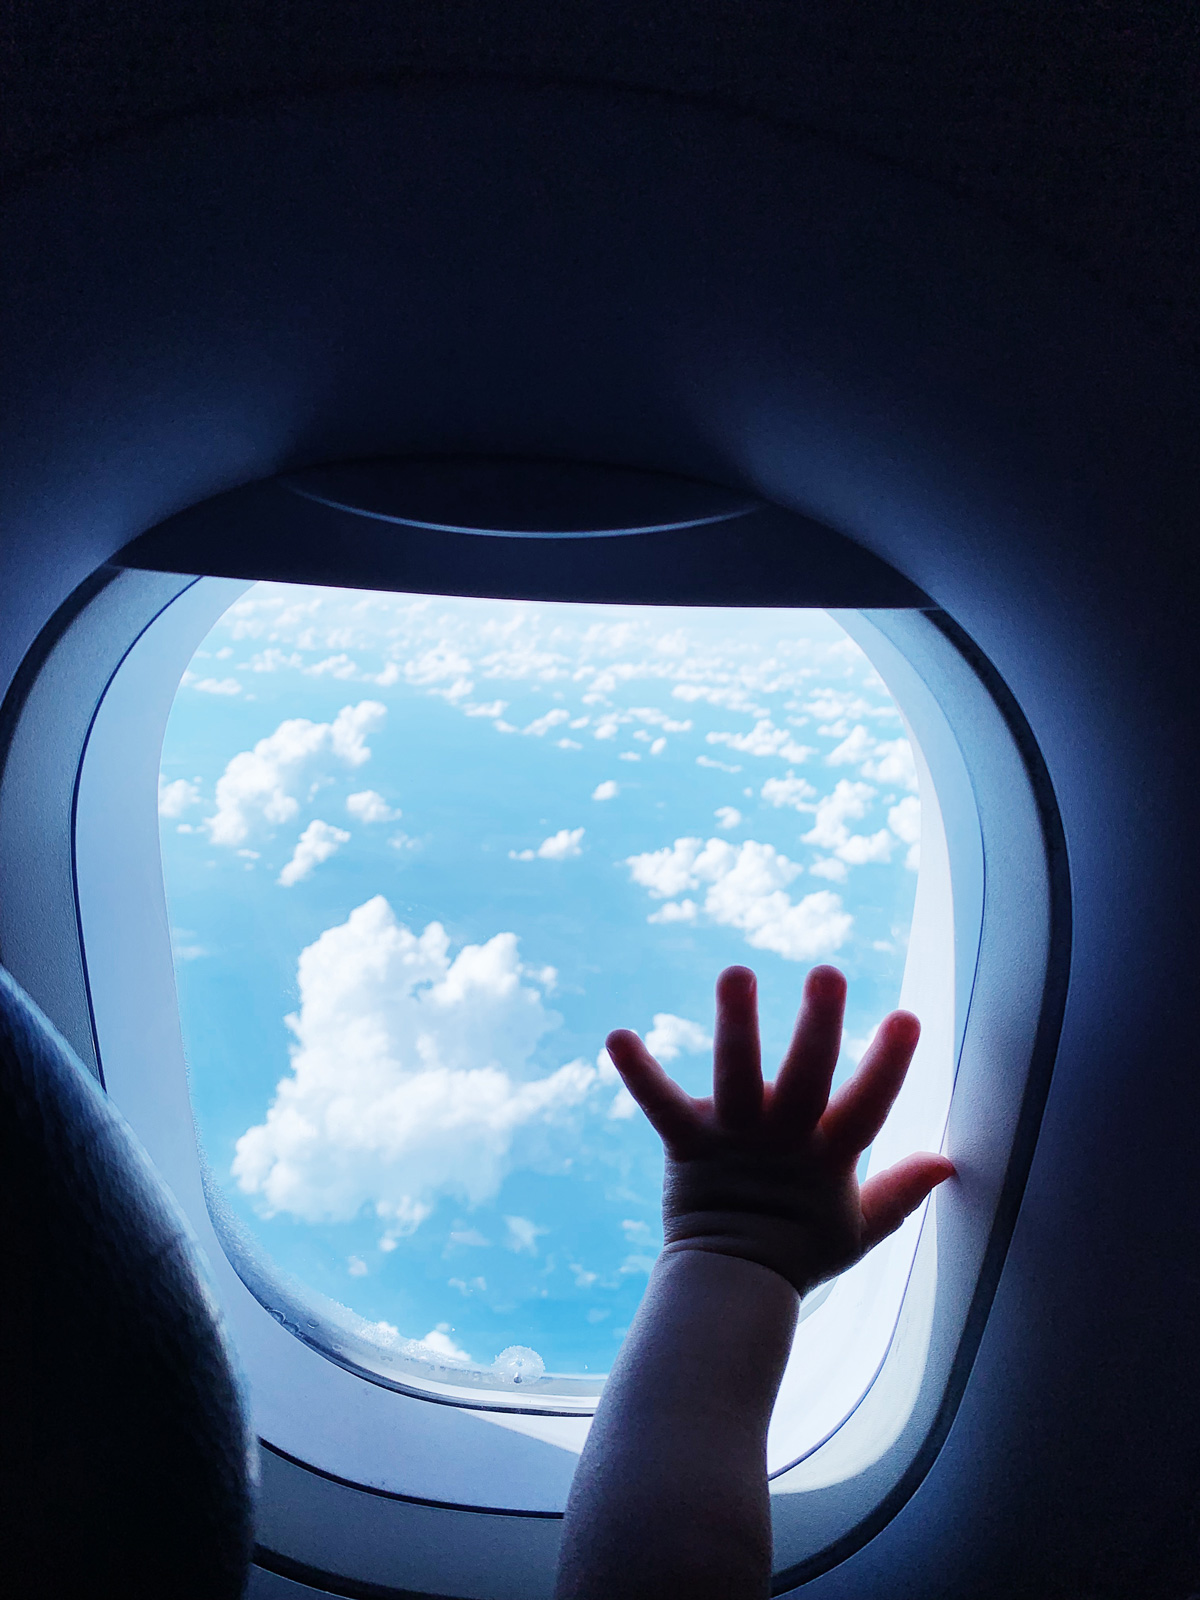 FLYING WITH A BABY – TIPS FOR TRAVELING WITH A BABY